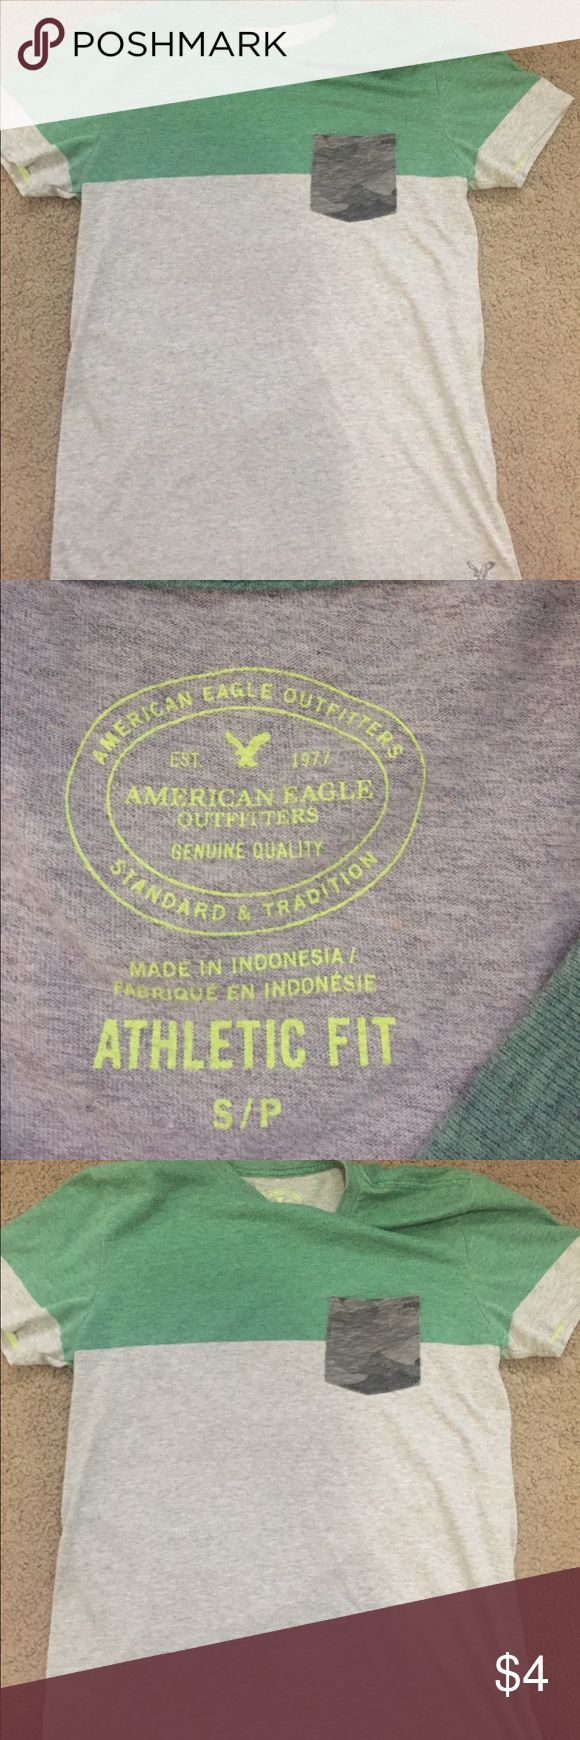 American Eagle shirt American Eagle men's shirt size small smoke and pet free home American Eagle Outfitters Shirts Tees - Short Sleeve